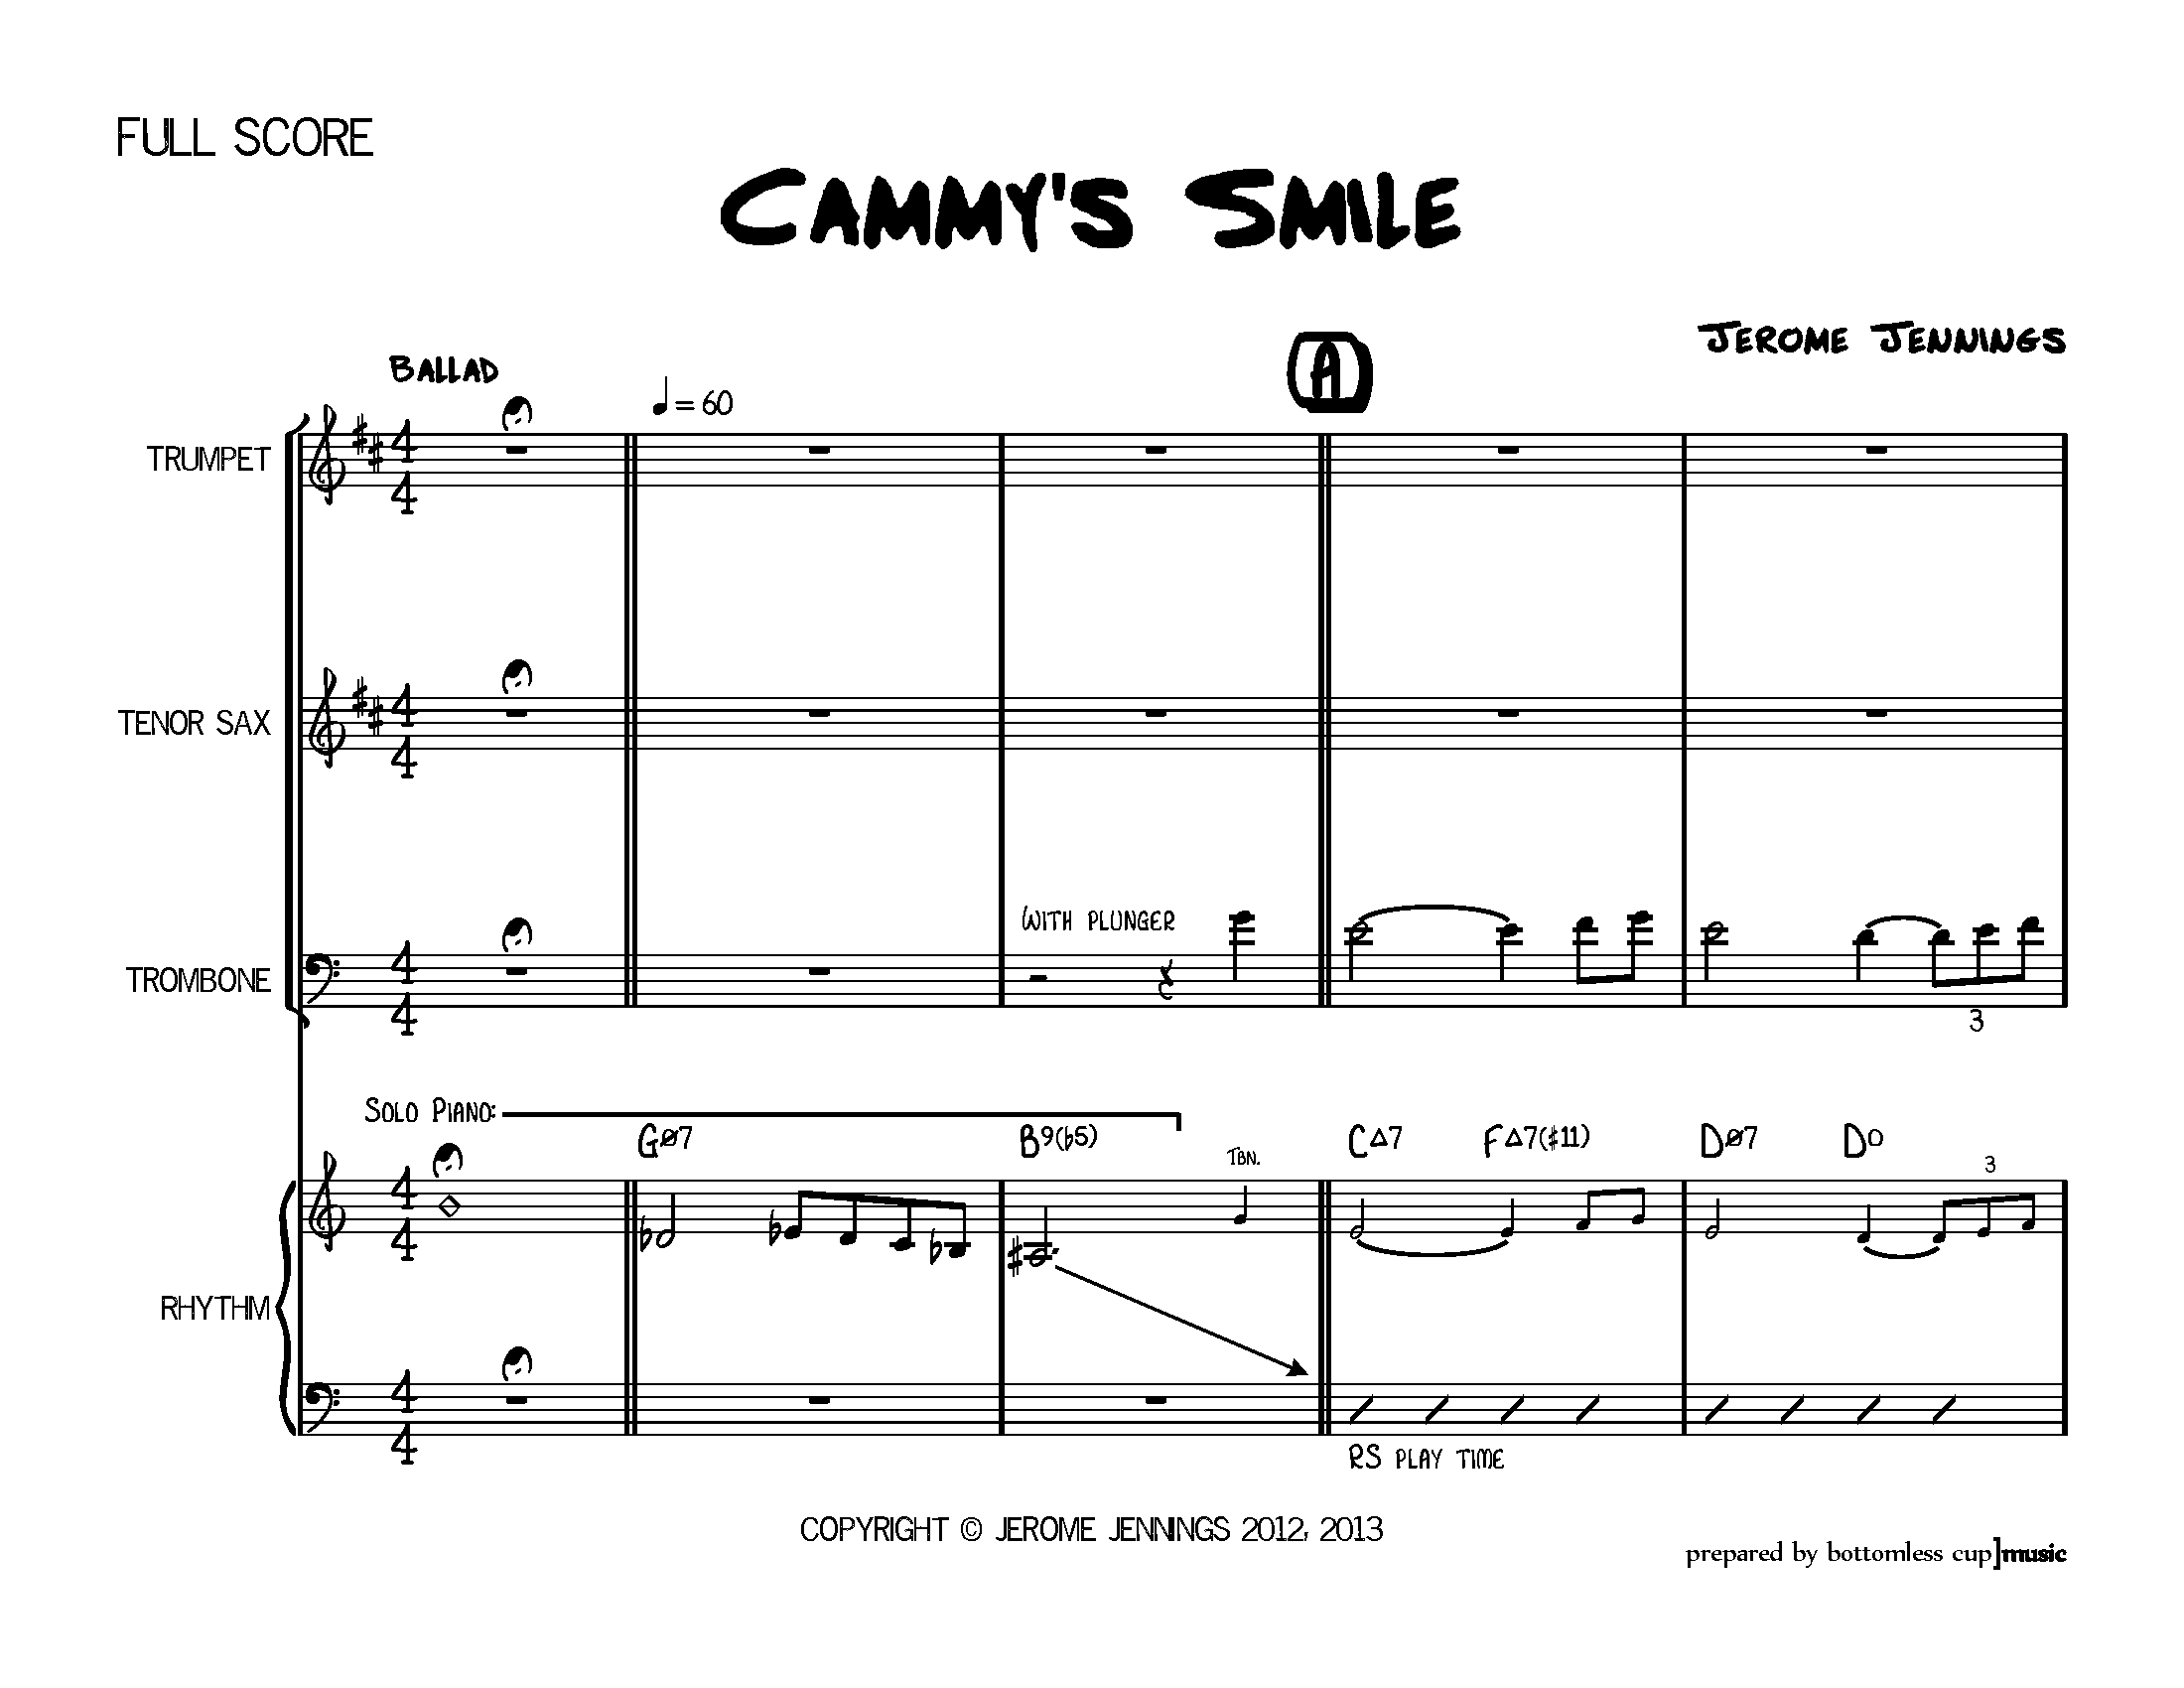 SCORE CLEANUP | Cammy's Smile